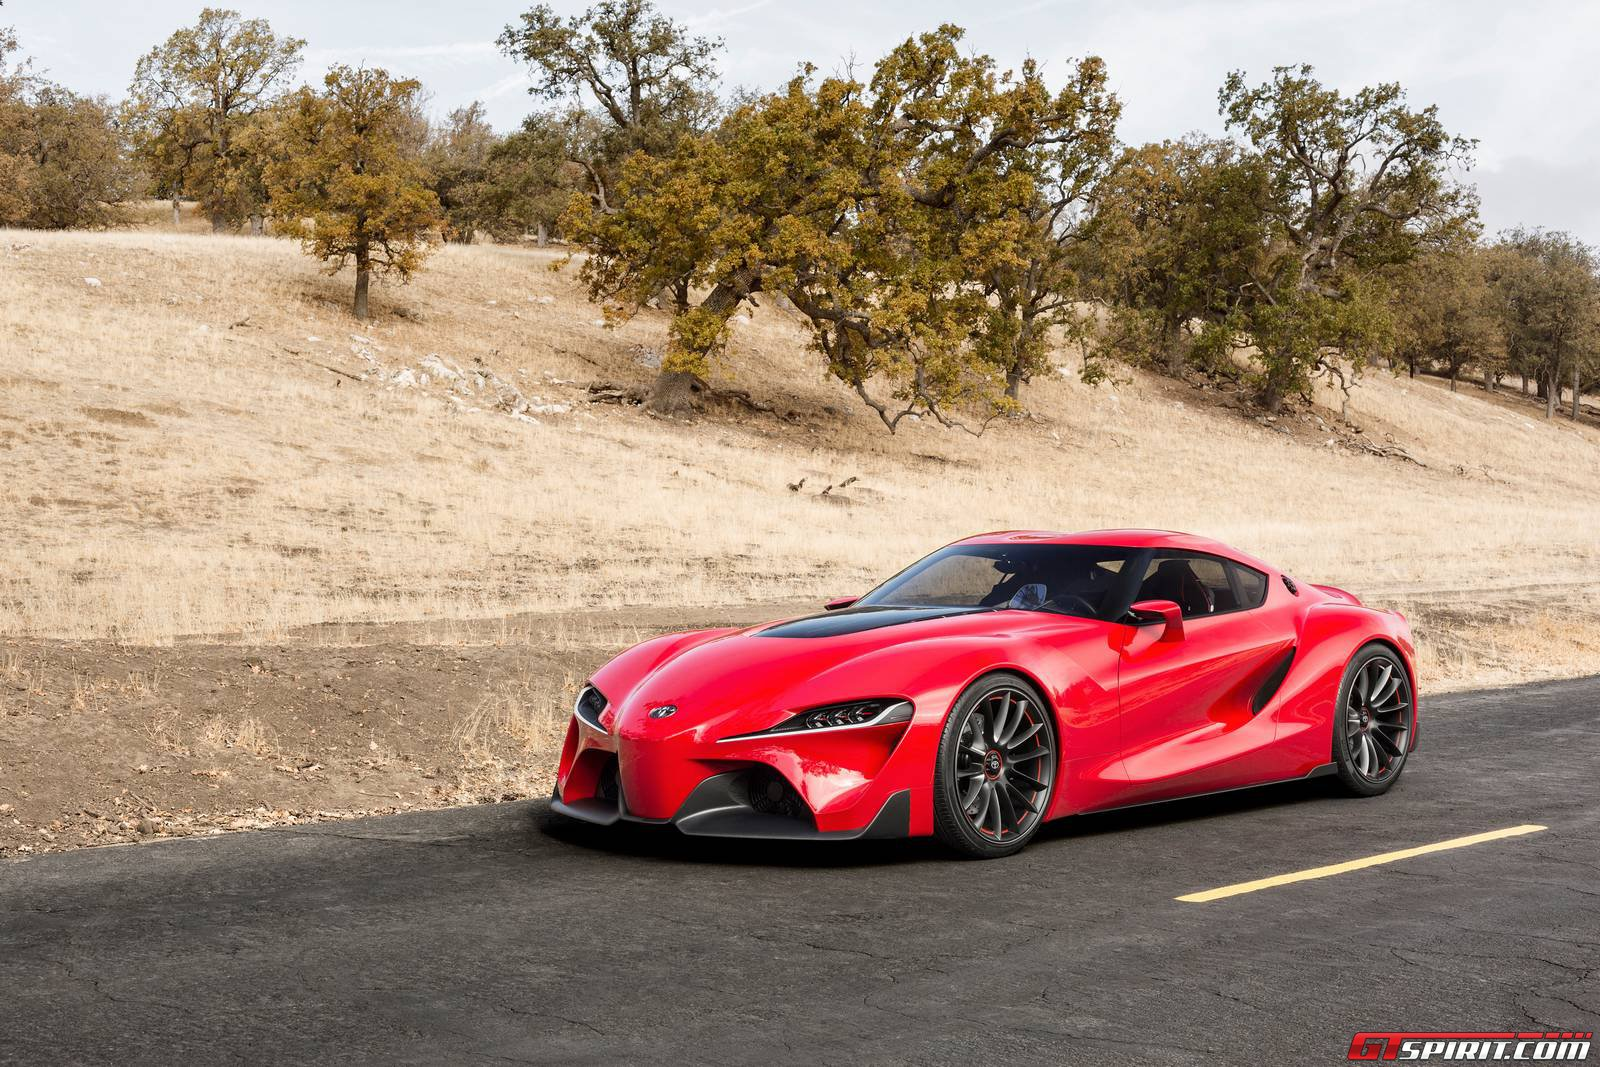 Lovely Toyota BMW Collab To Spawn Z4 And Supra Replacements With Supercapacitors!